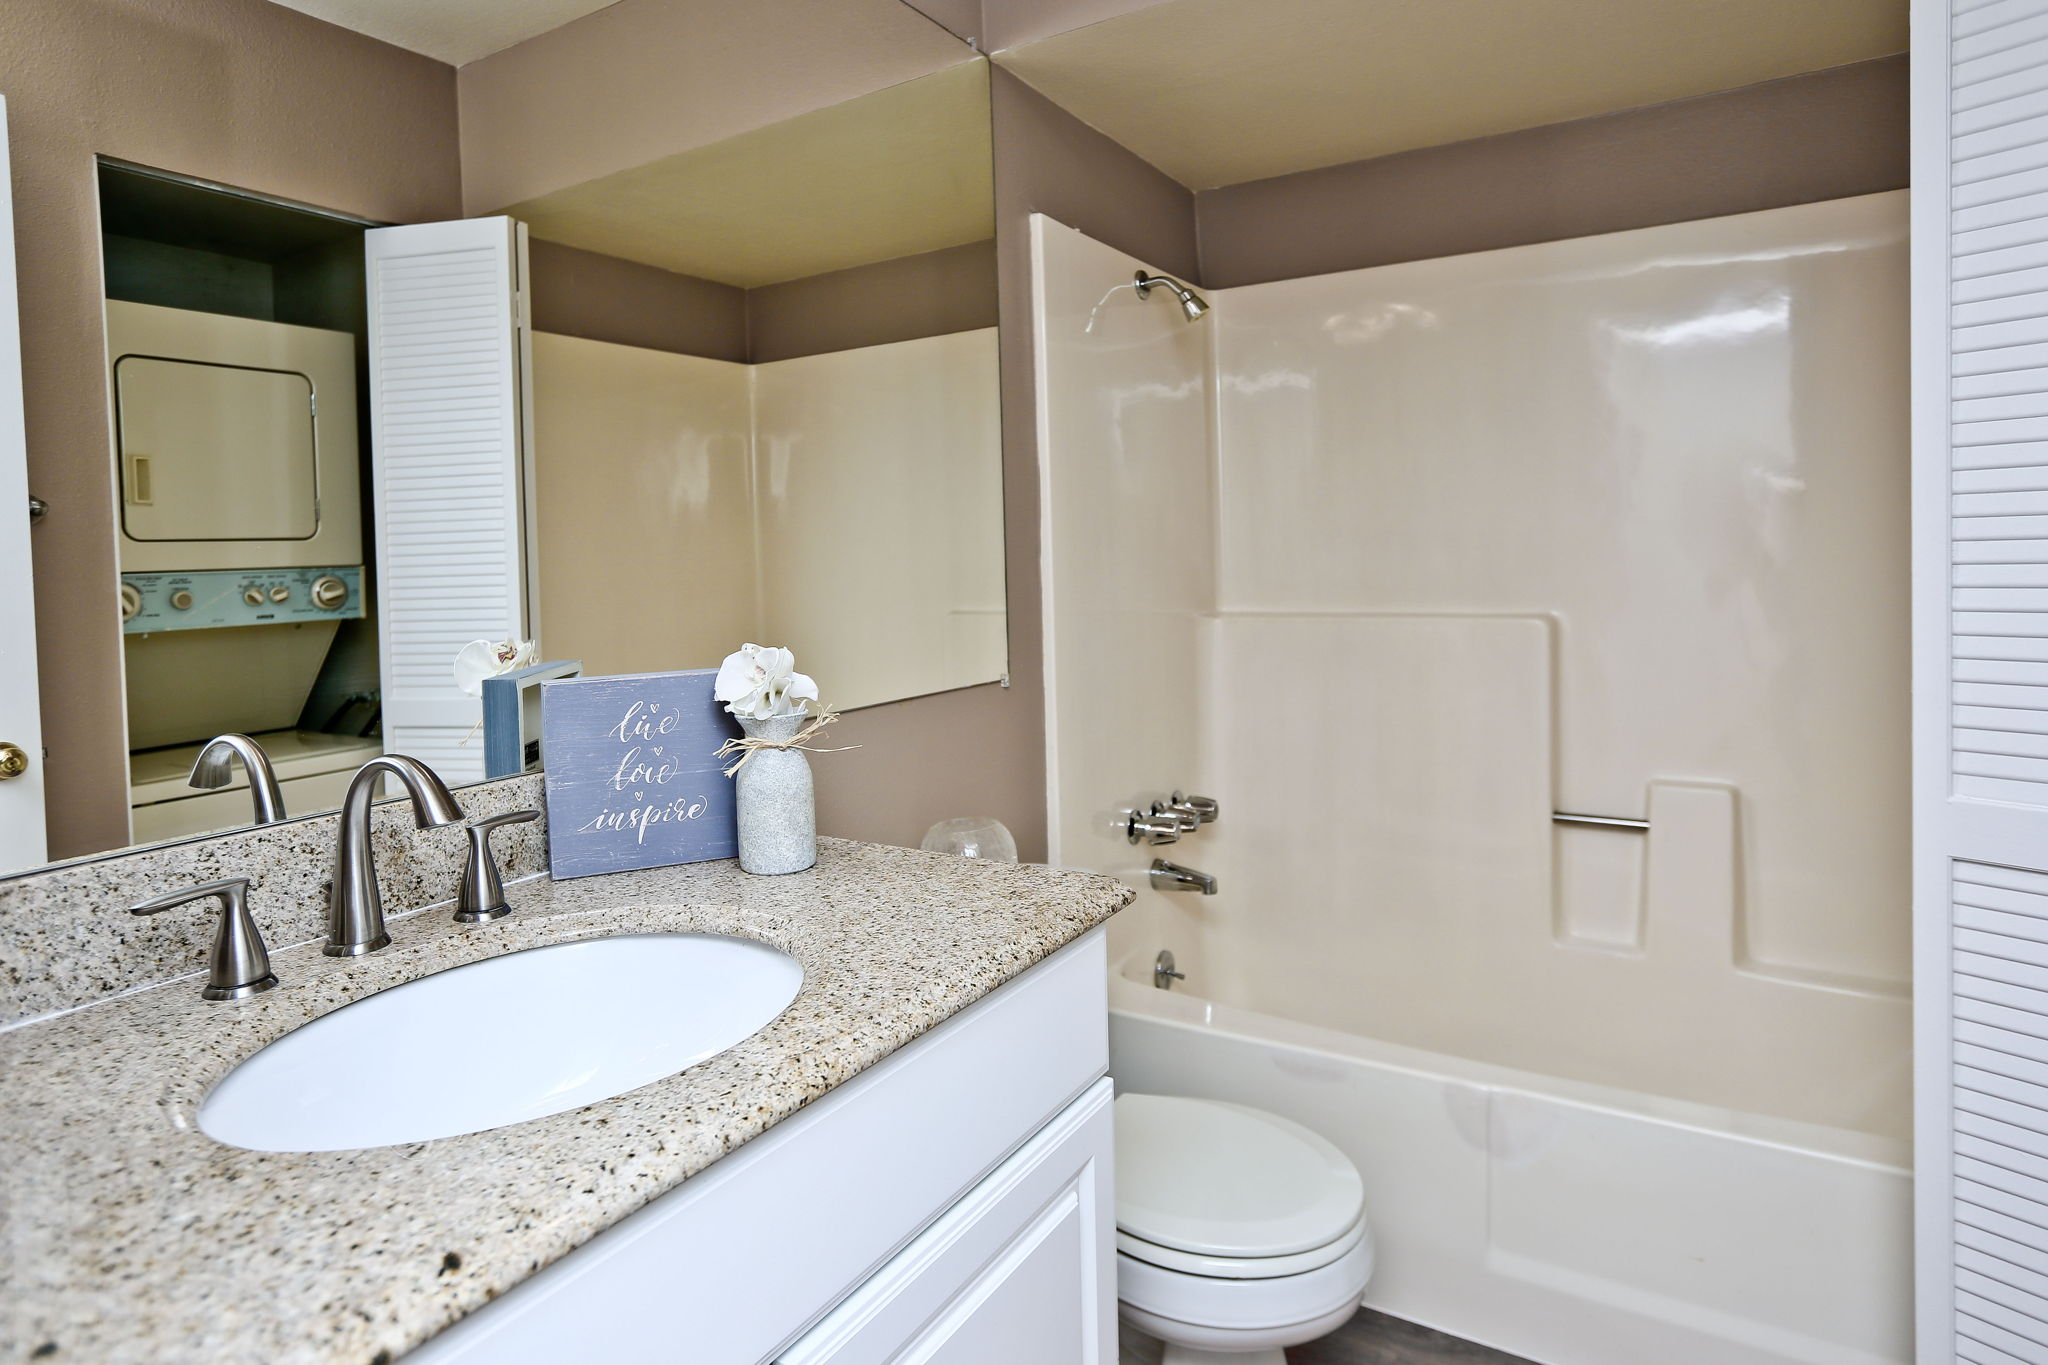 Bathroom with newer vanity, full size tub/shower